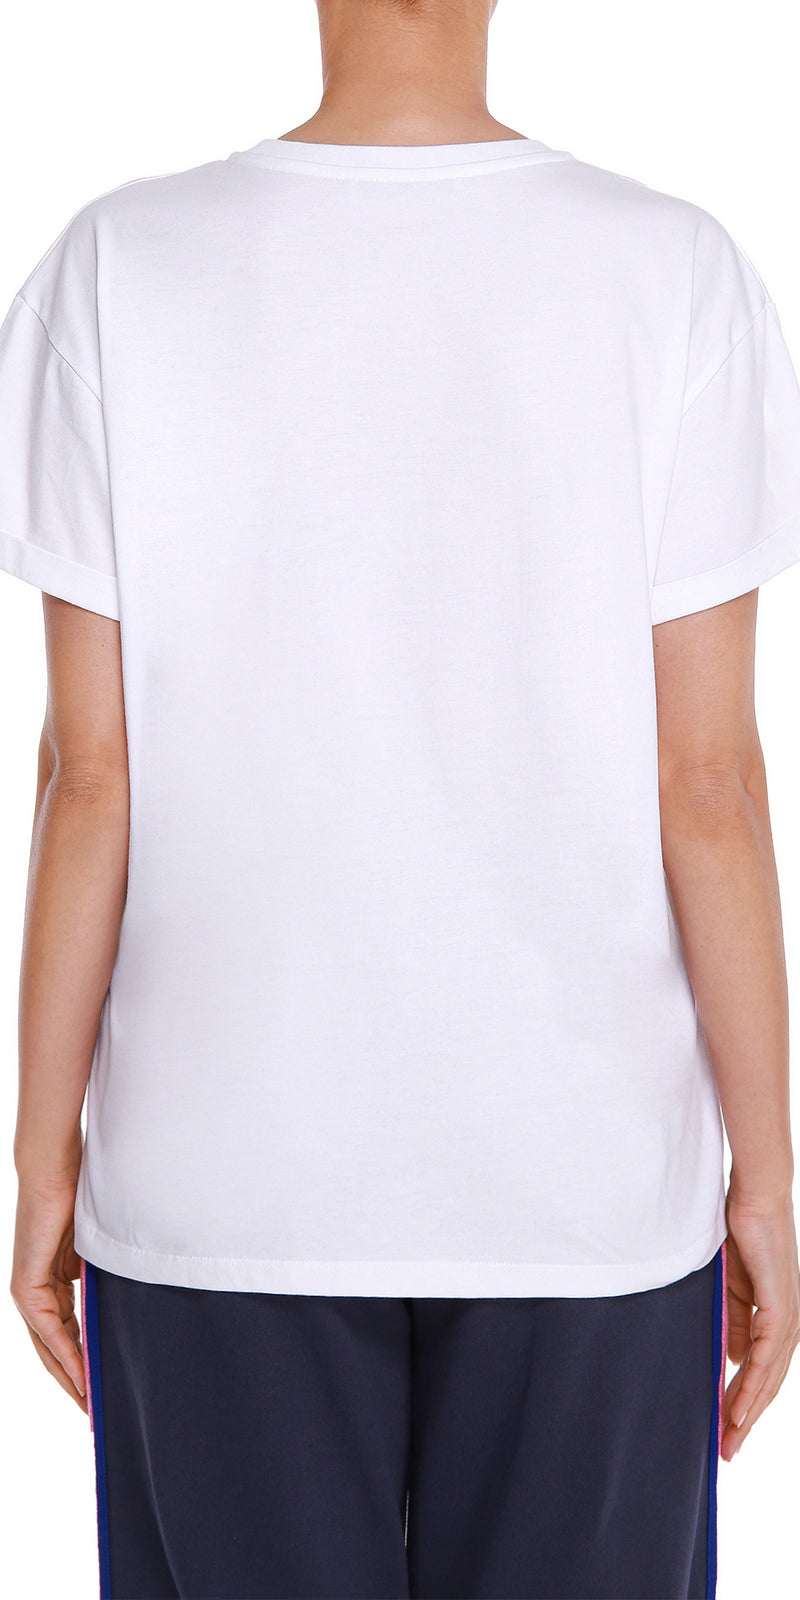 Degrade White T-Shirt